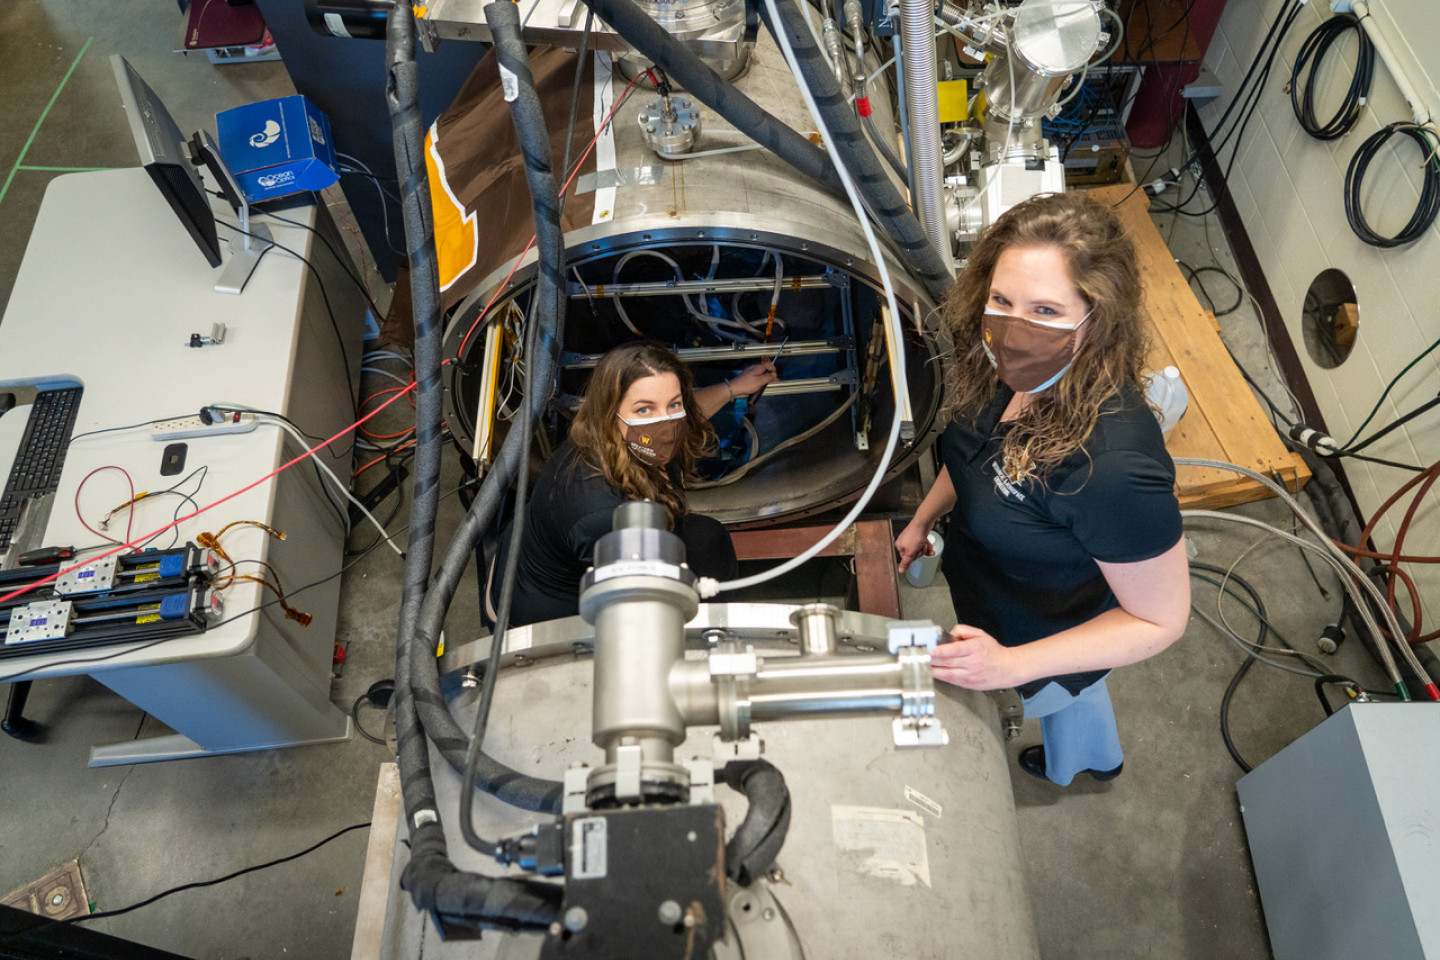 Margaret Mooney and Dr. Kristina Lemmer pose for a picture inside an open vacuum chamber in an engineering laboratory.